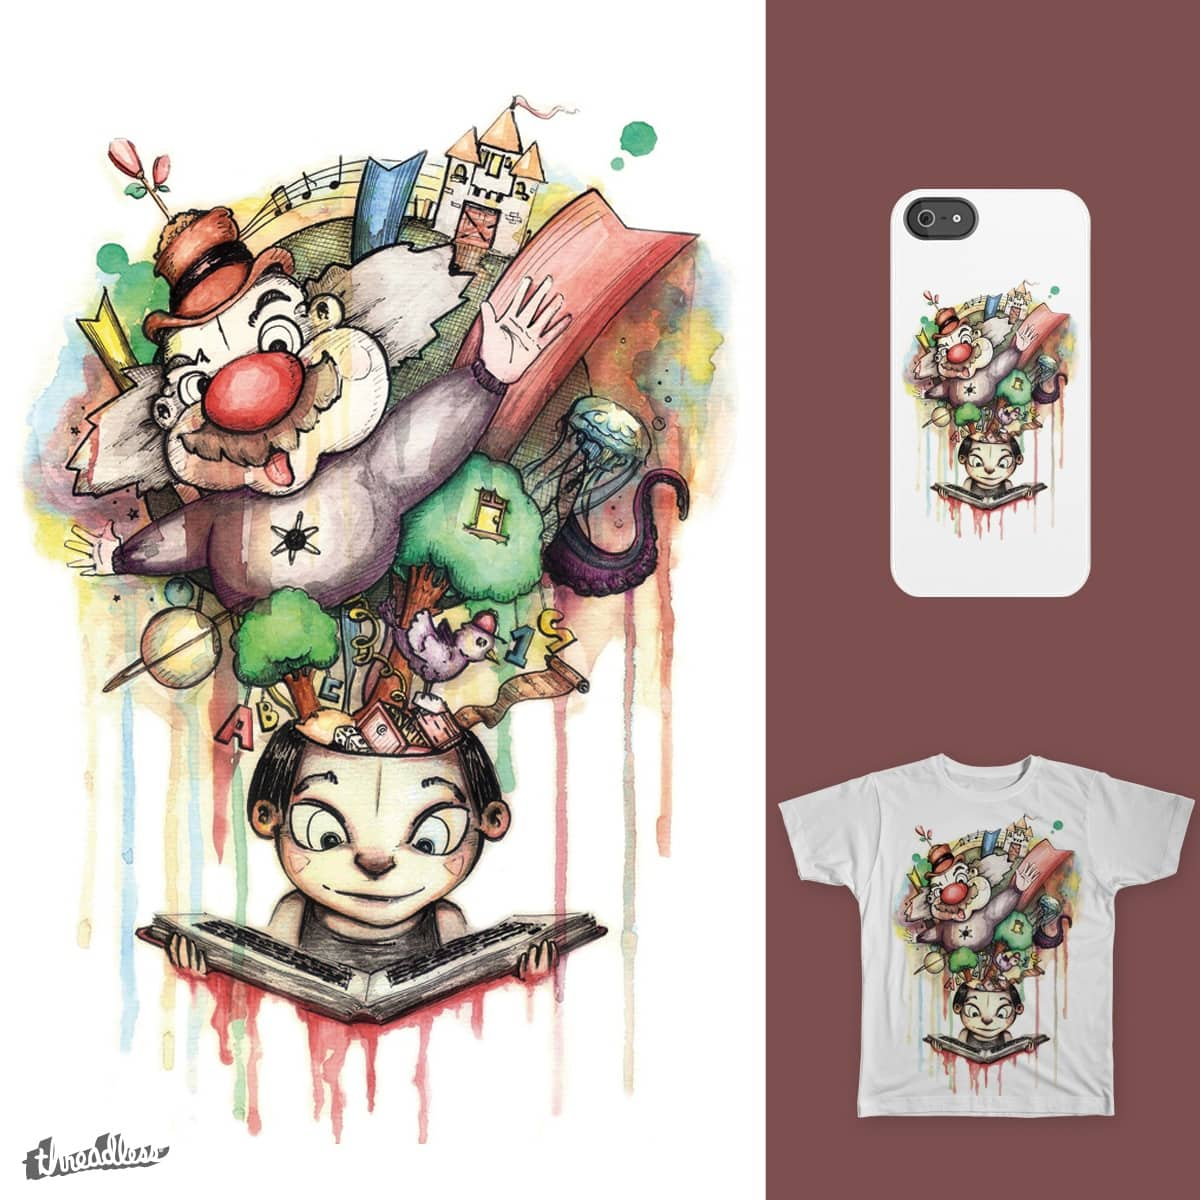 Expanded World by Maufield on Threadless